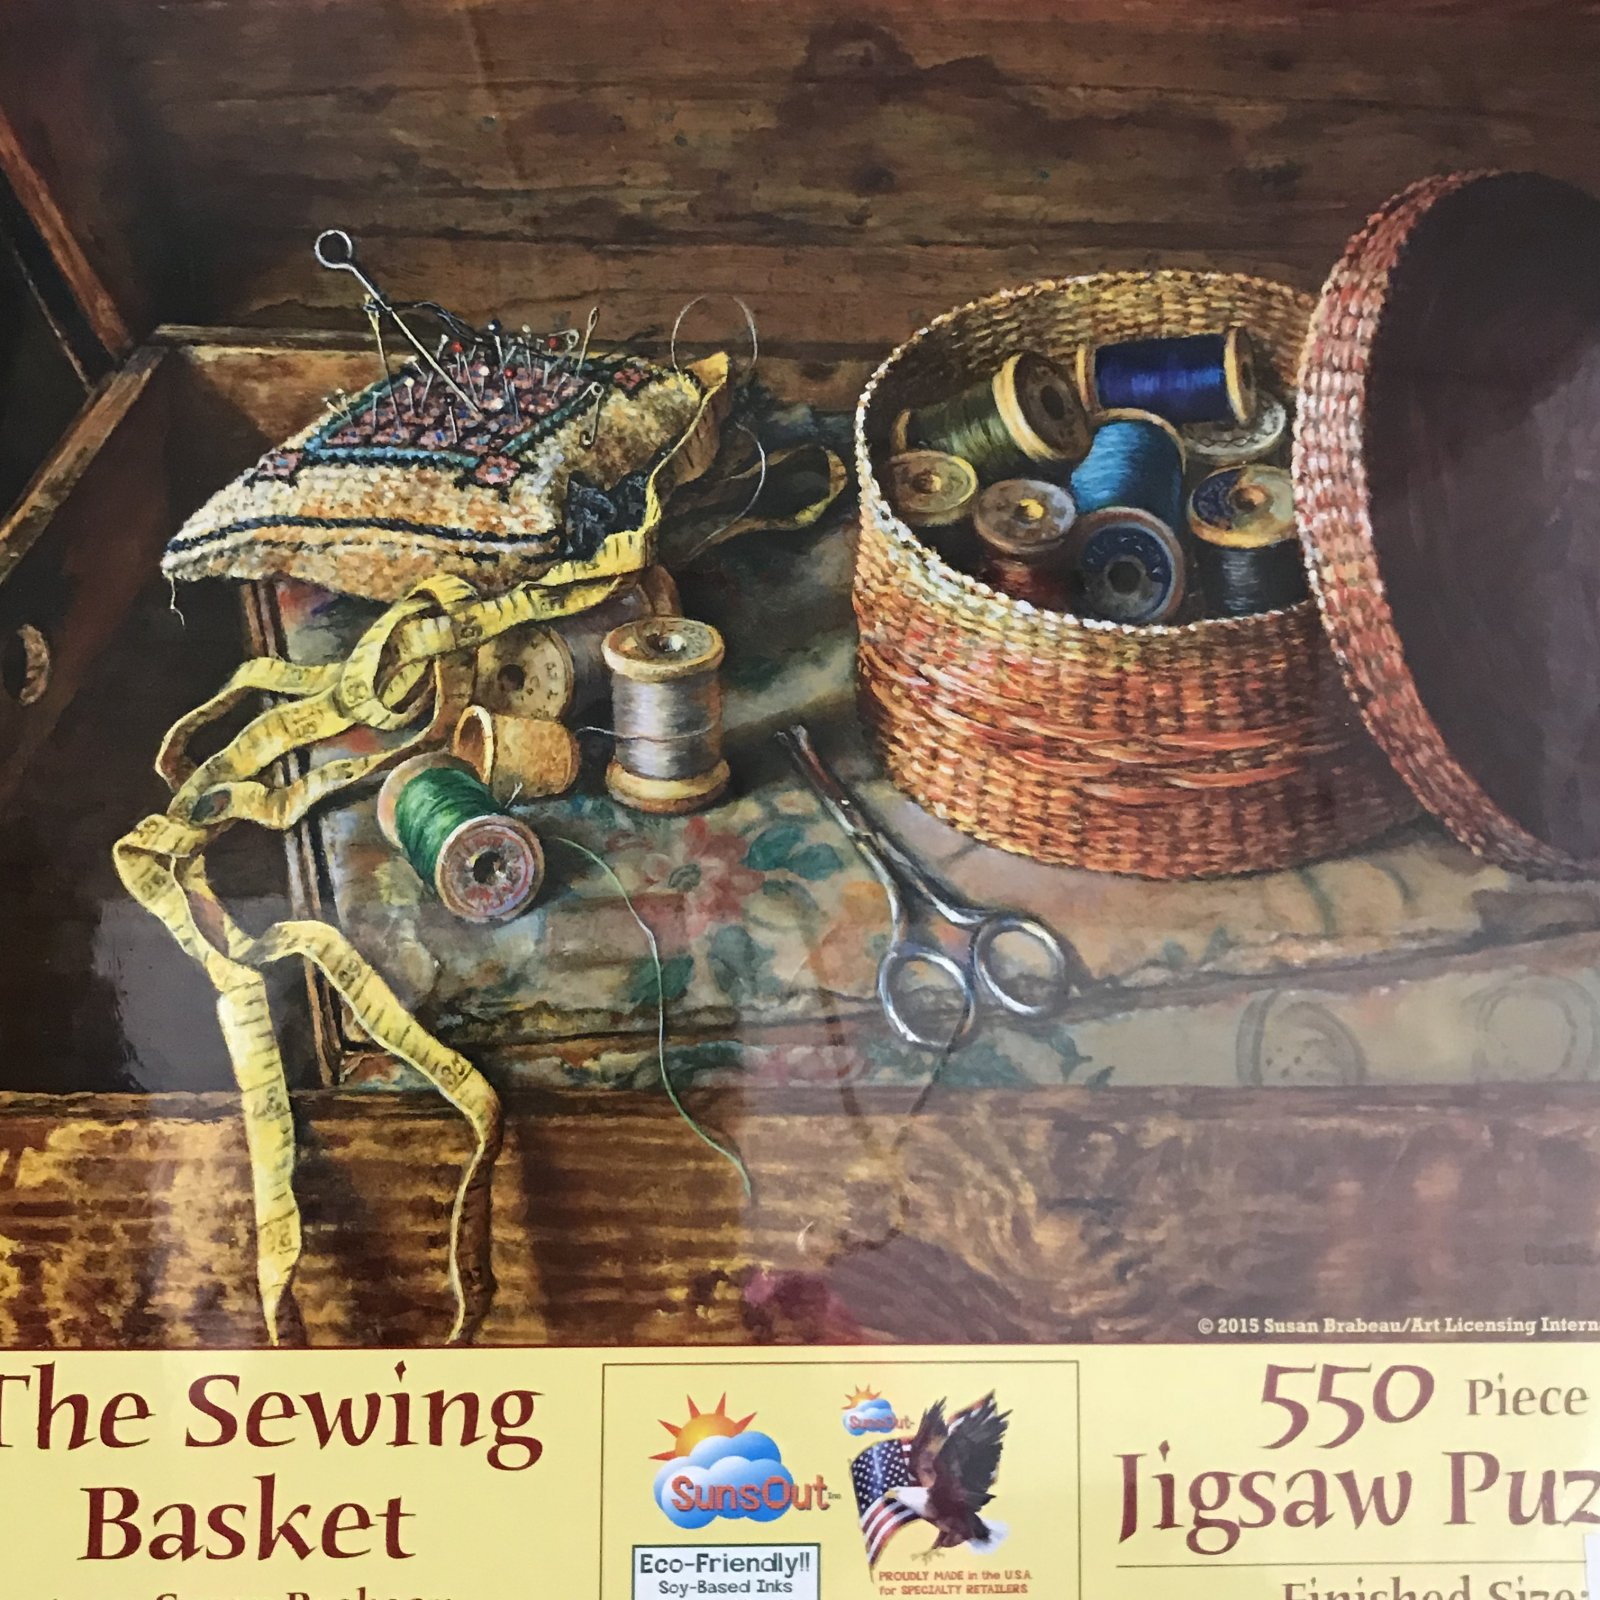 The Sewing Basket Puzzle